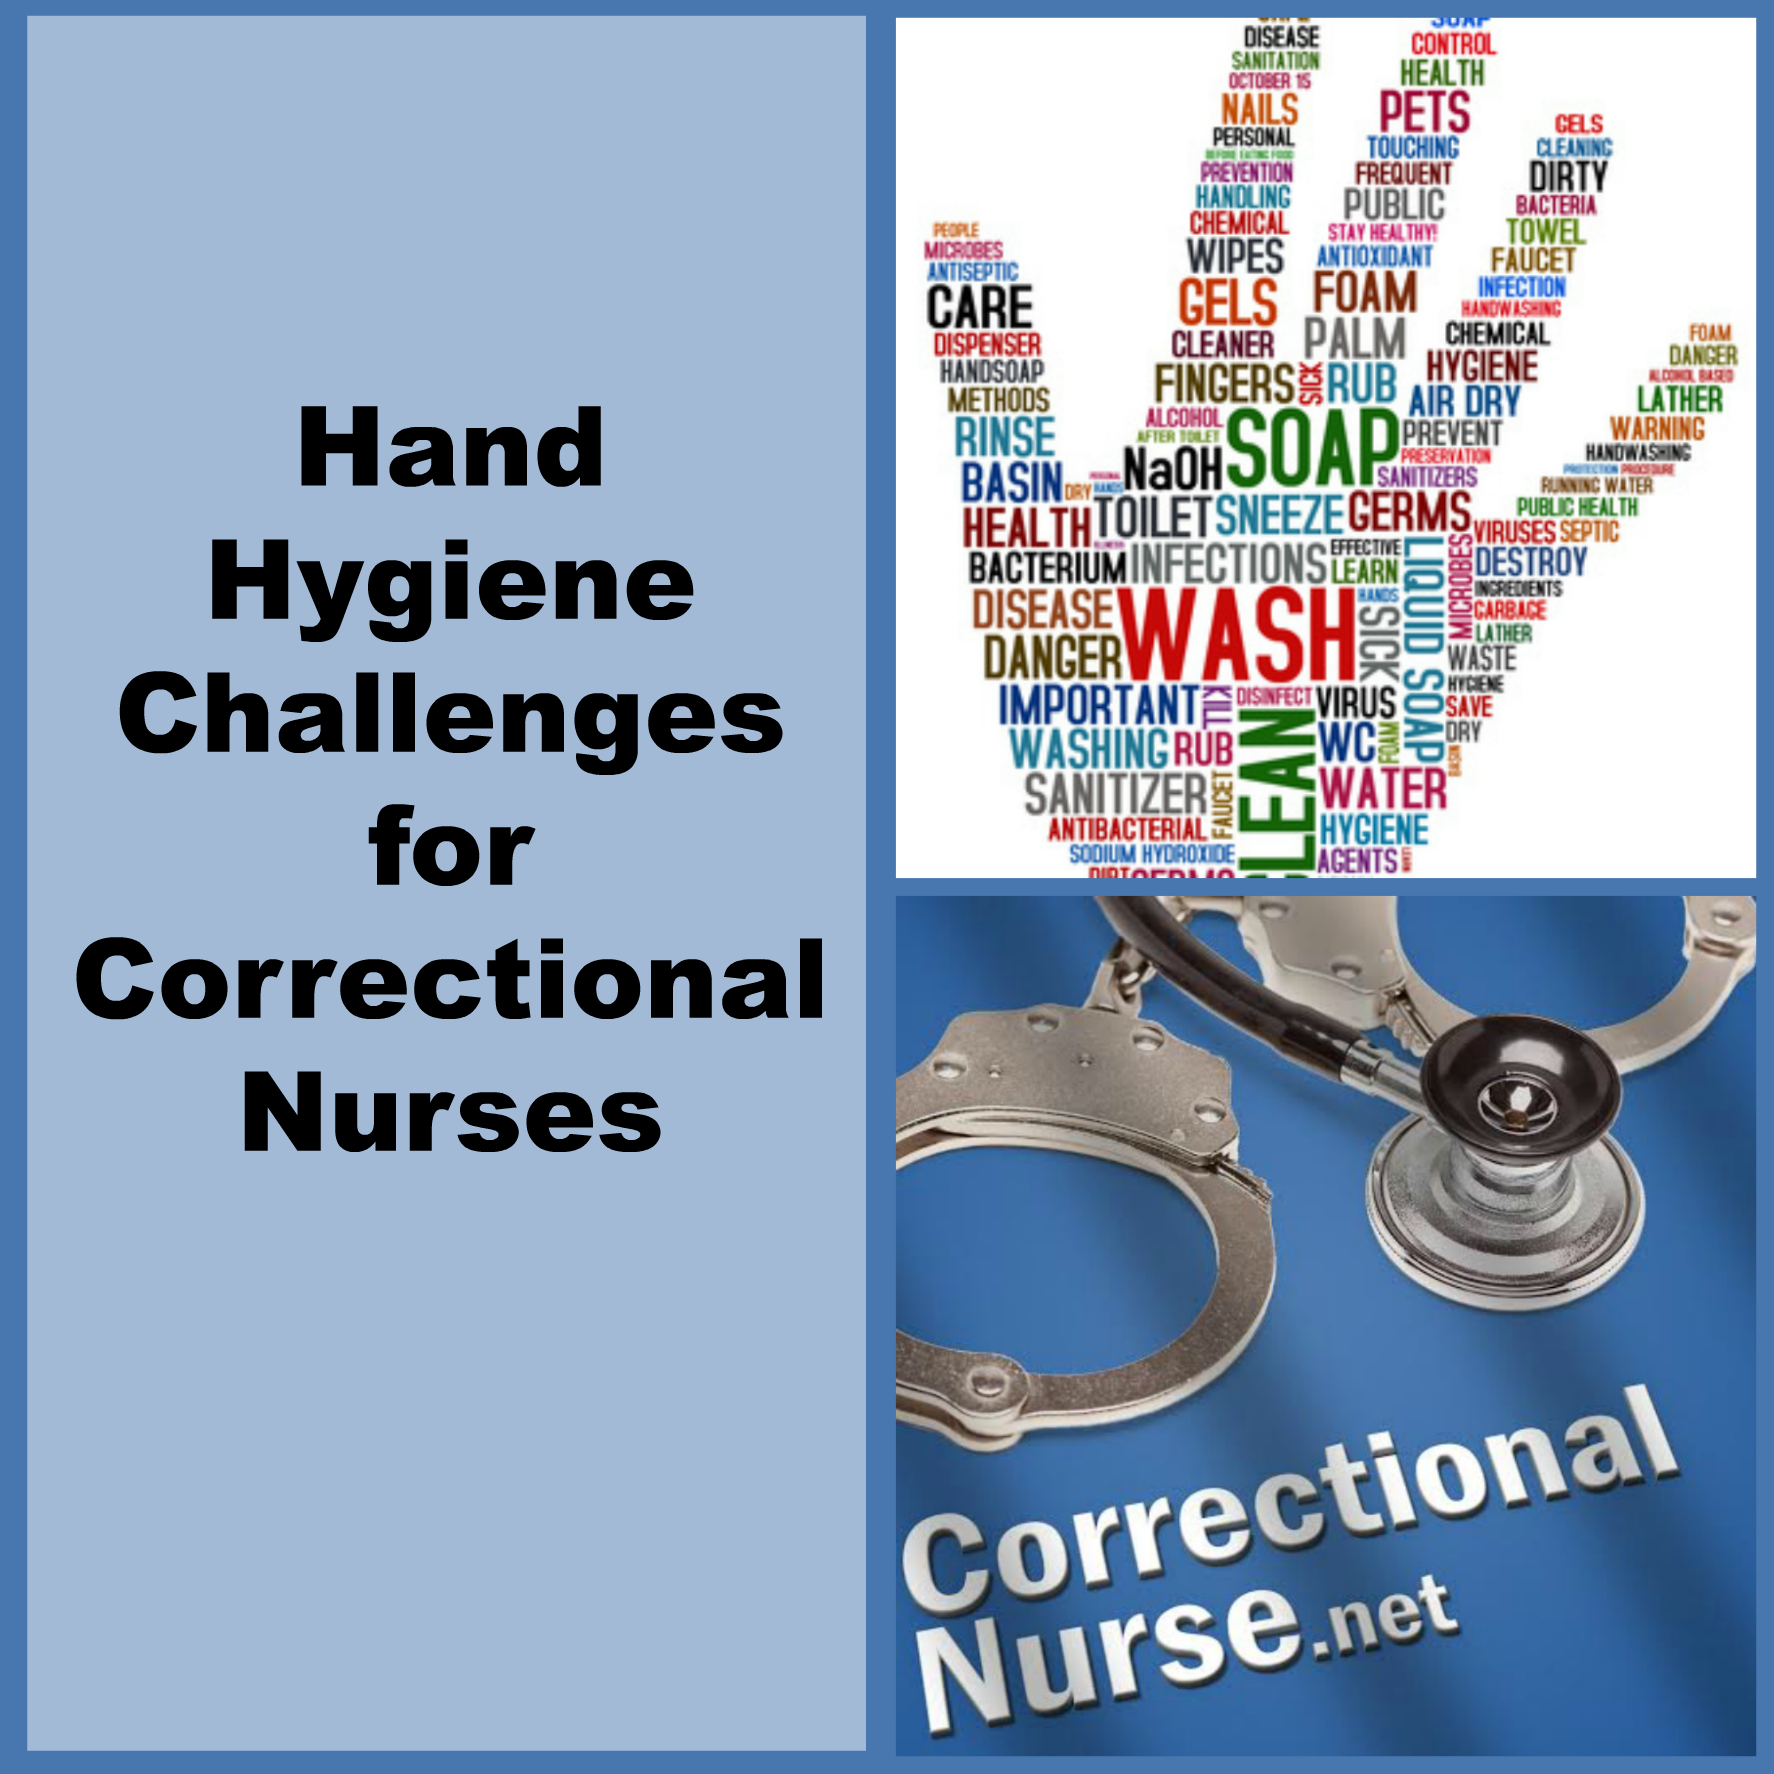 nursing reflection on hand hygiene Hand hygiene: reflection abouth the importance of infection  nursing hand hygiene care  hand hygiene is not new as a measure recommended for infection .